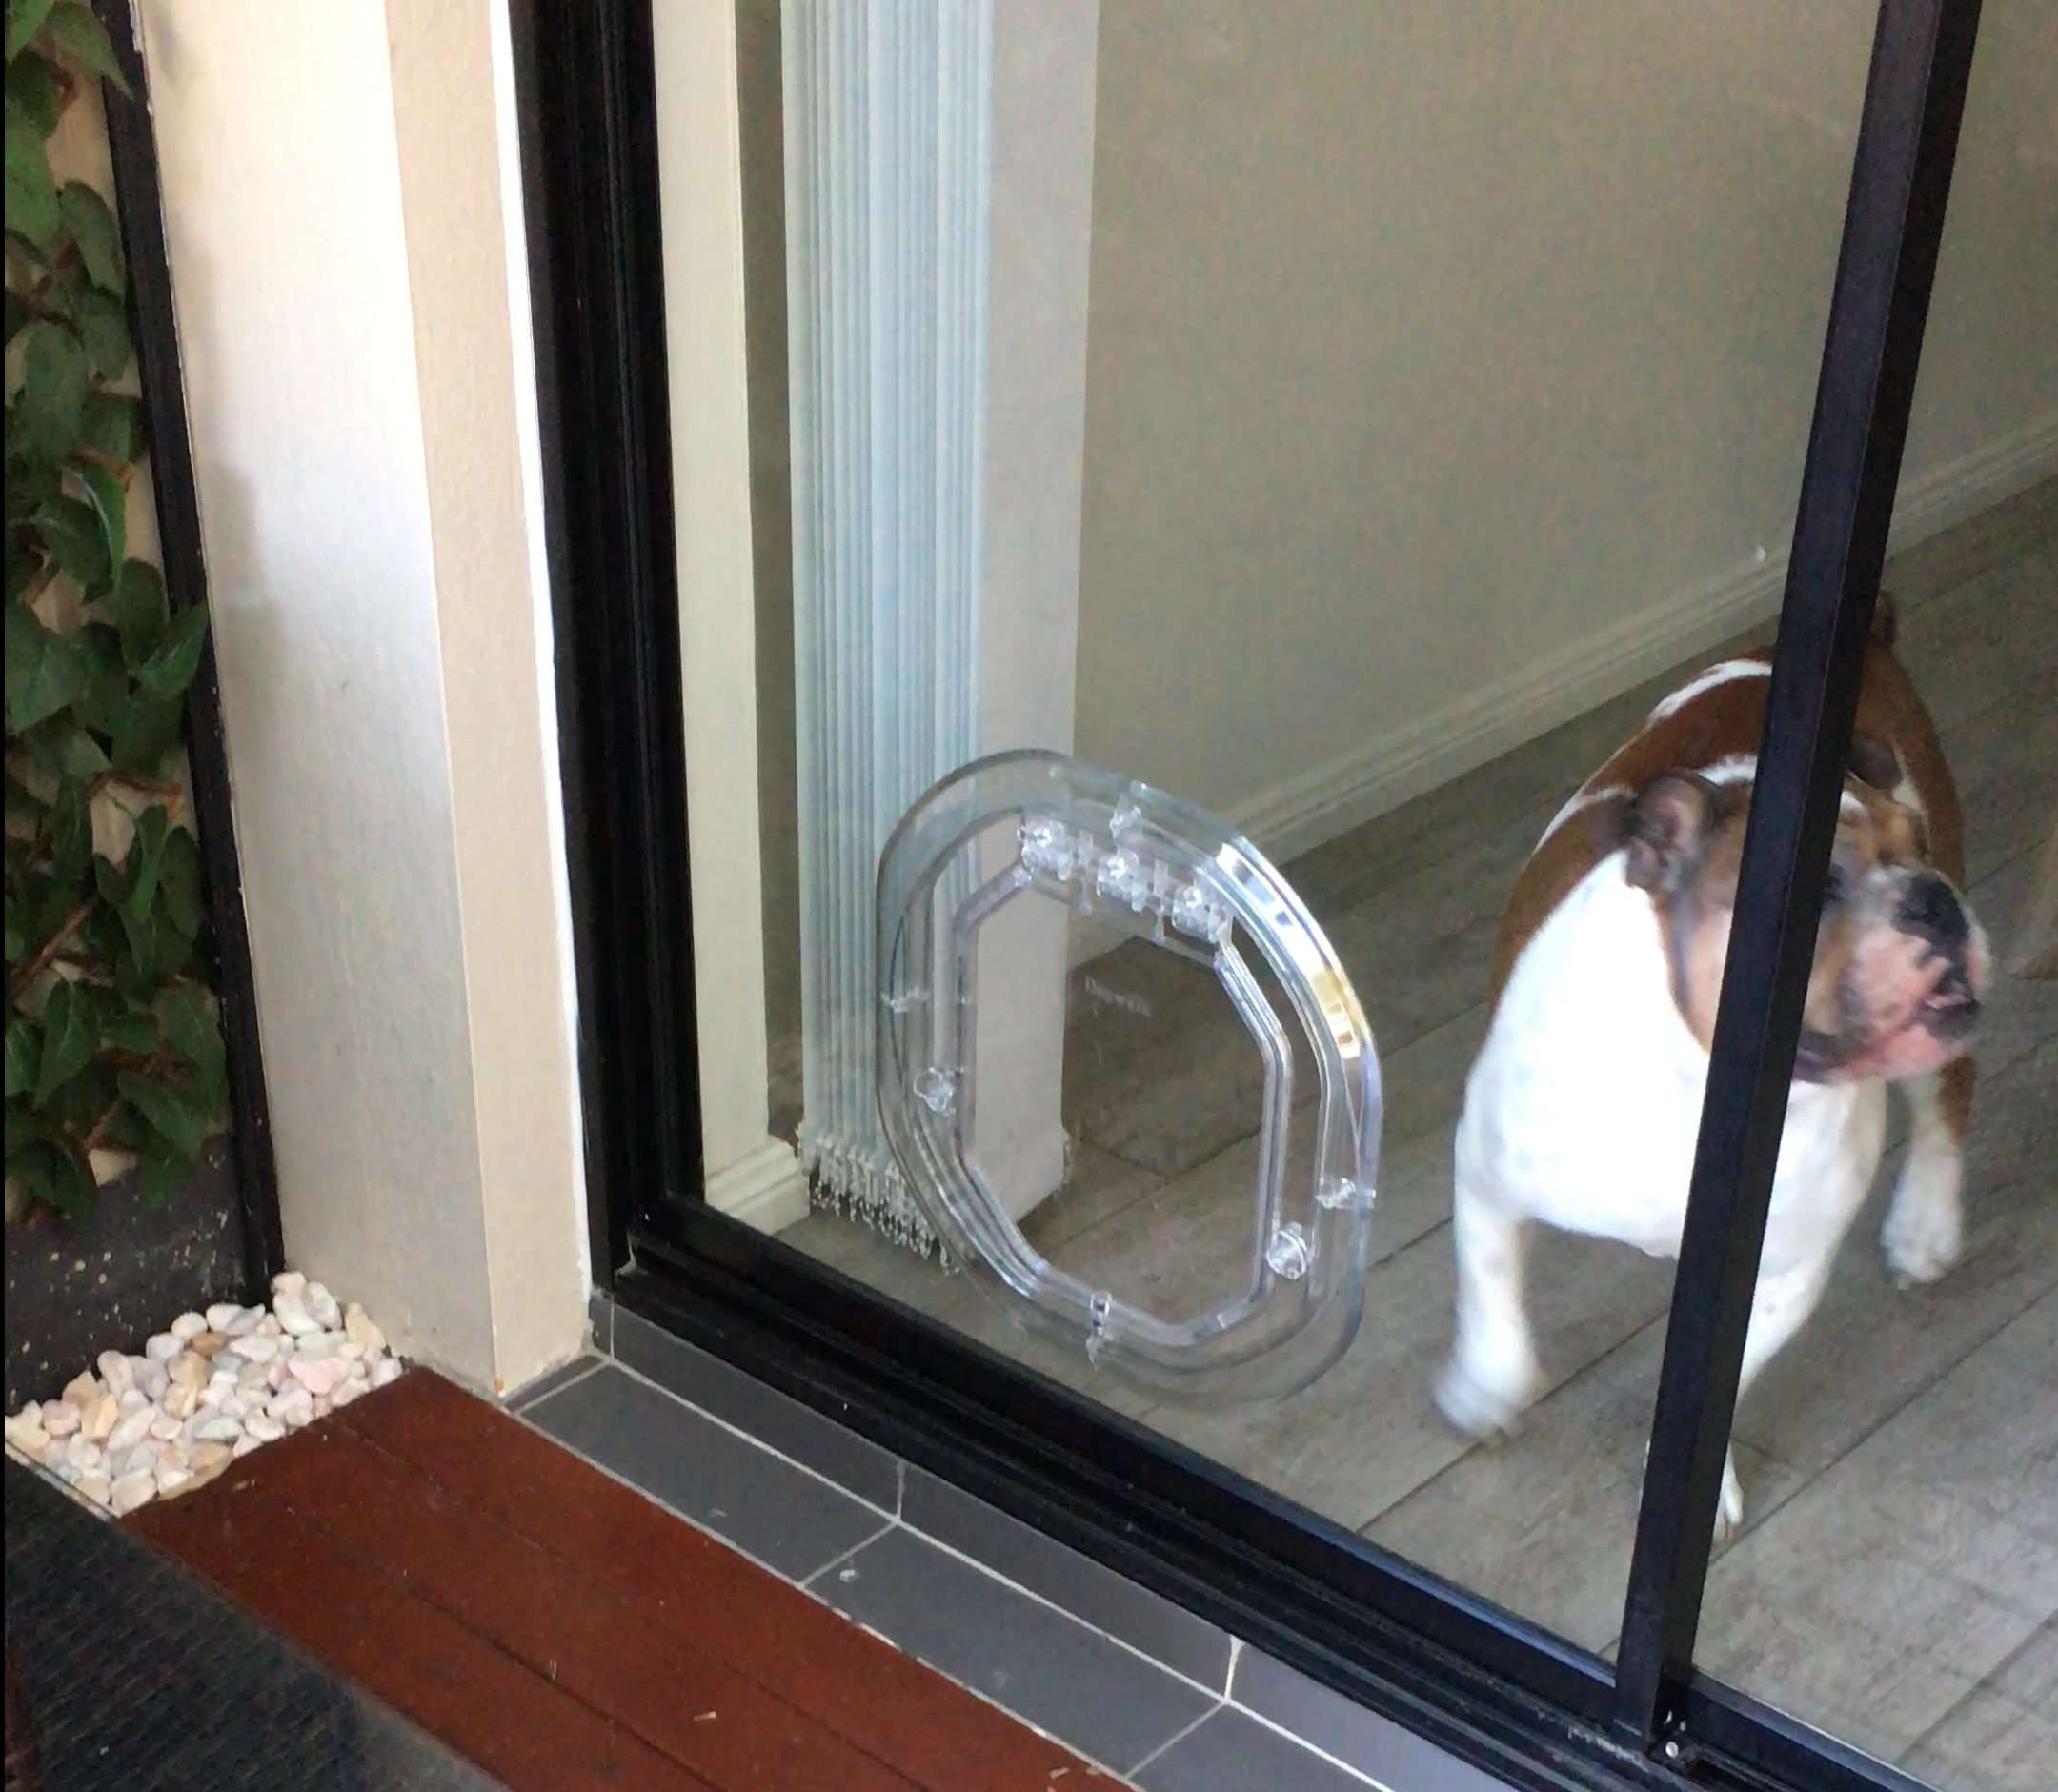 Bulldog using the dog door